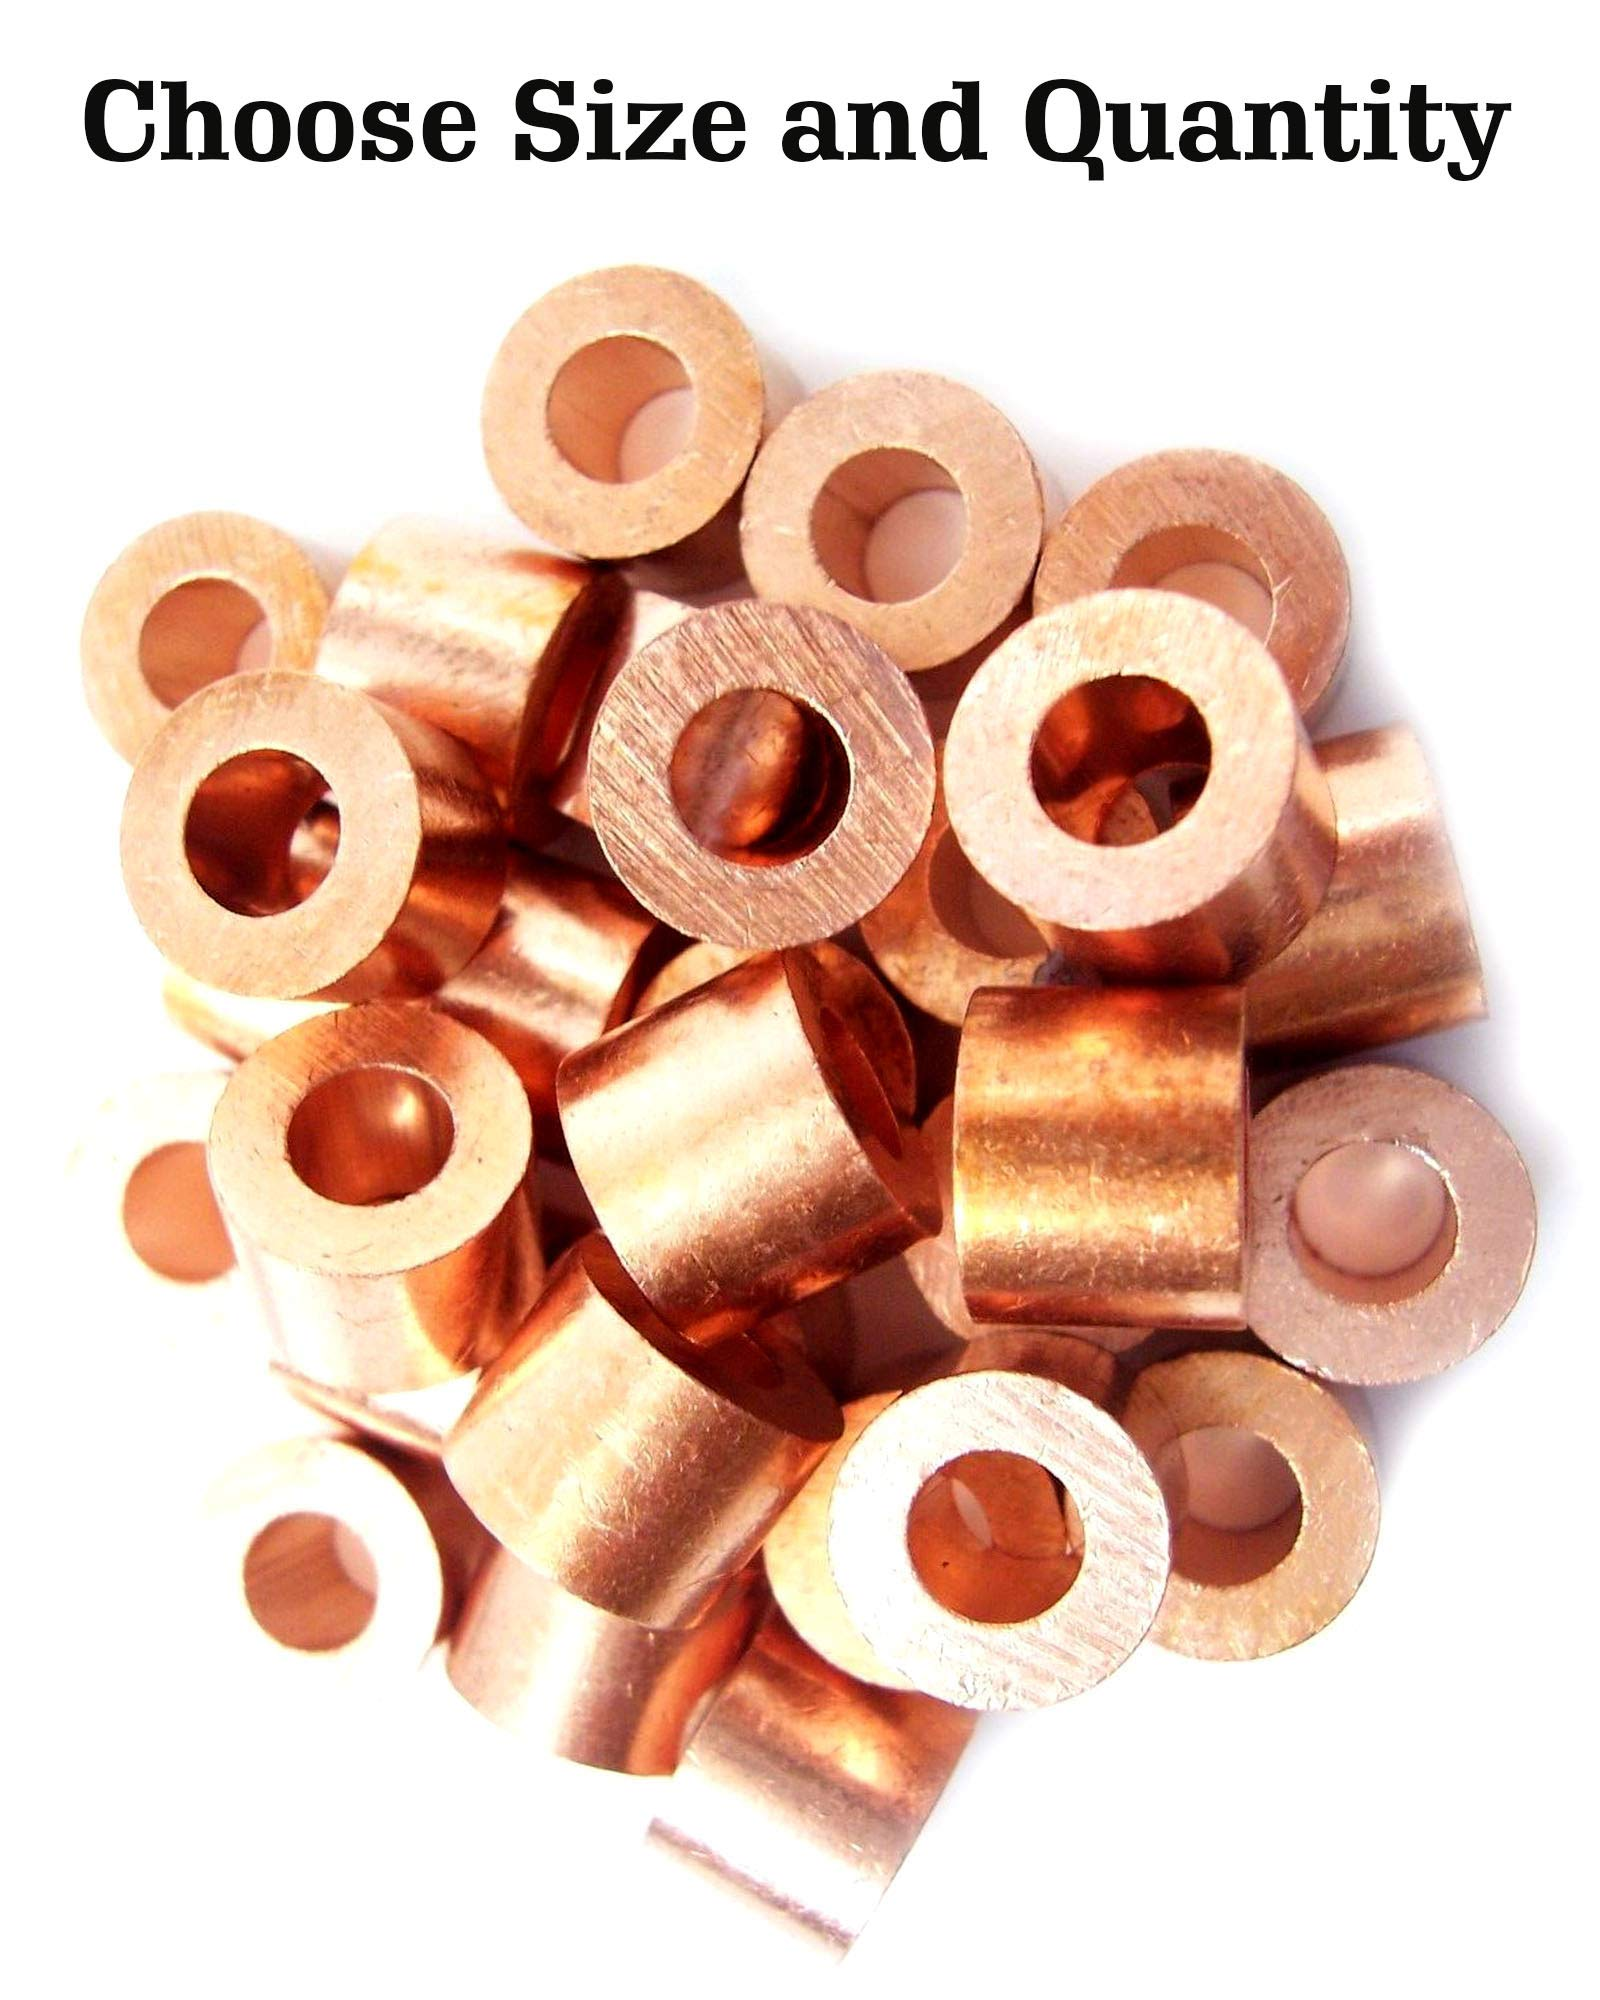 Copper Swage Stop for 1/8'' Wire Rope Cable - Copper Cable Stop Sleeve for 1/8 Inch Wire Rope Swage Clip Copper Cable Crimp Sleeves Cable Stops 1/8'' Copper Swage Sleeves